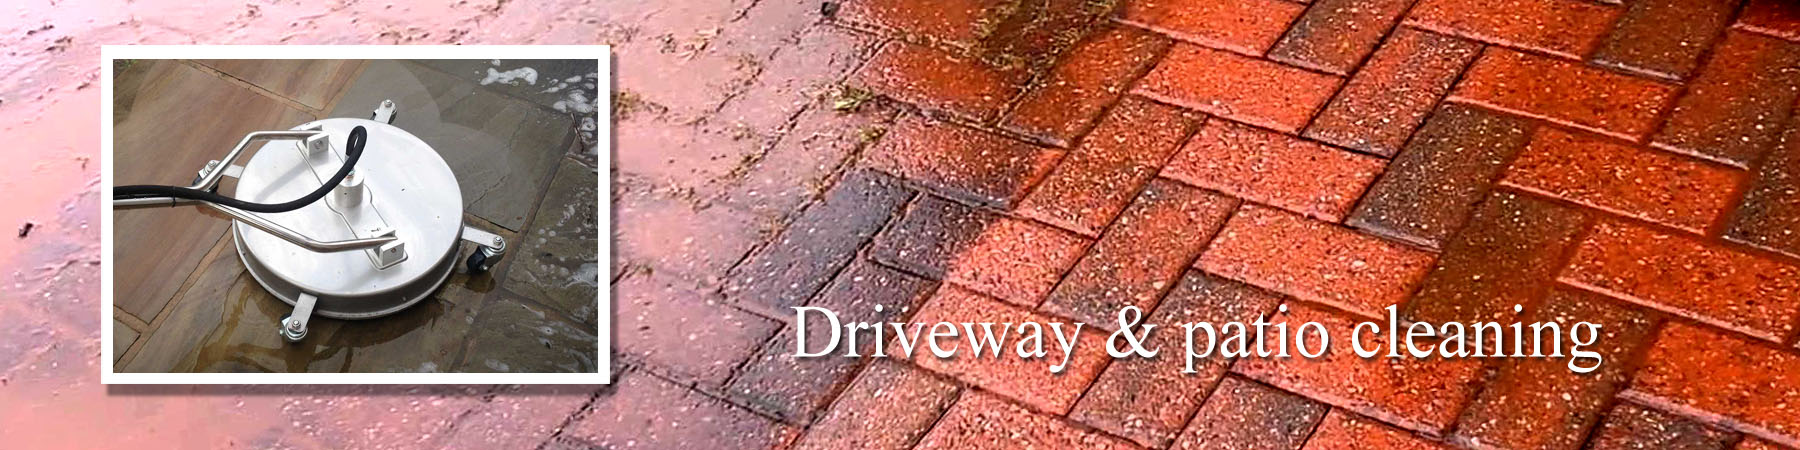 Driveway & Patio Cleaning Thurnham J R Cleaning